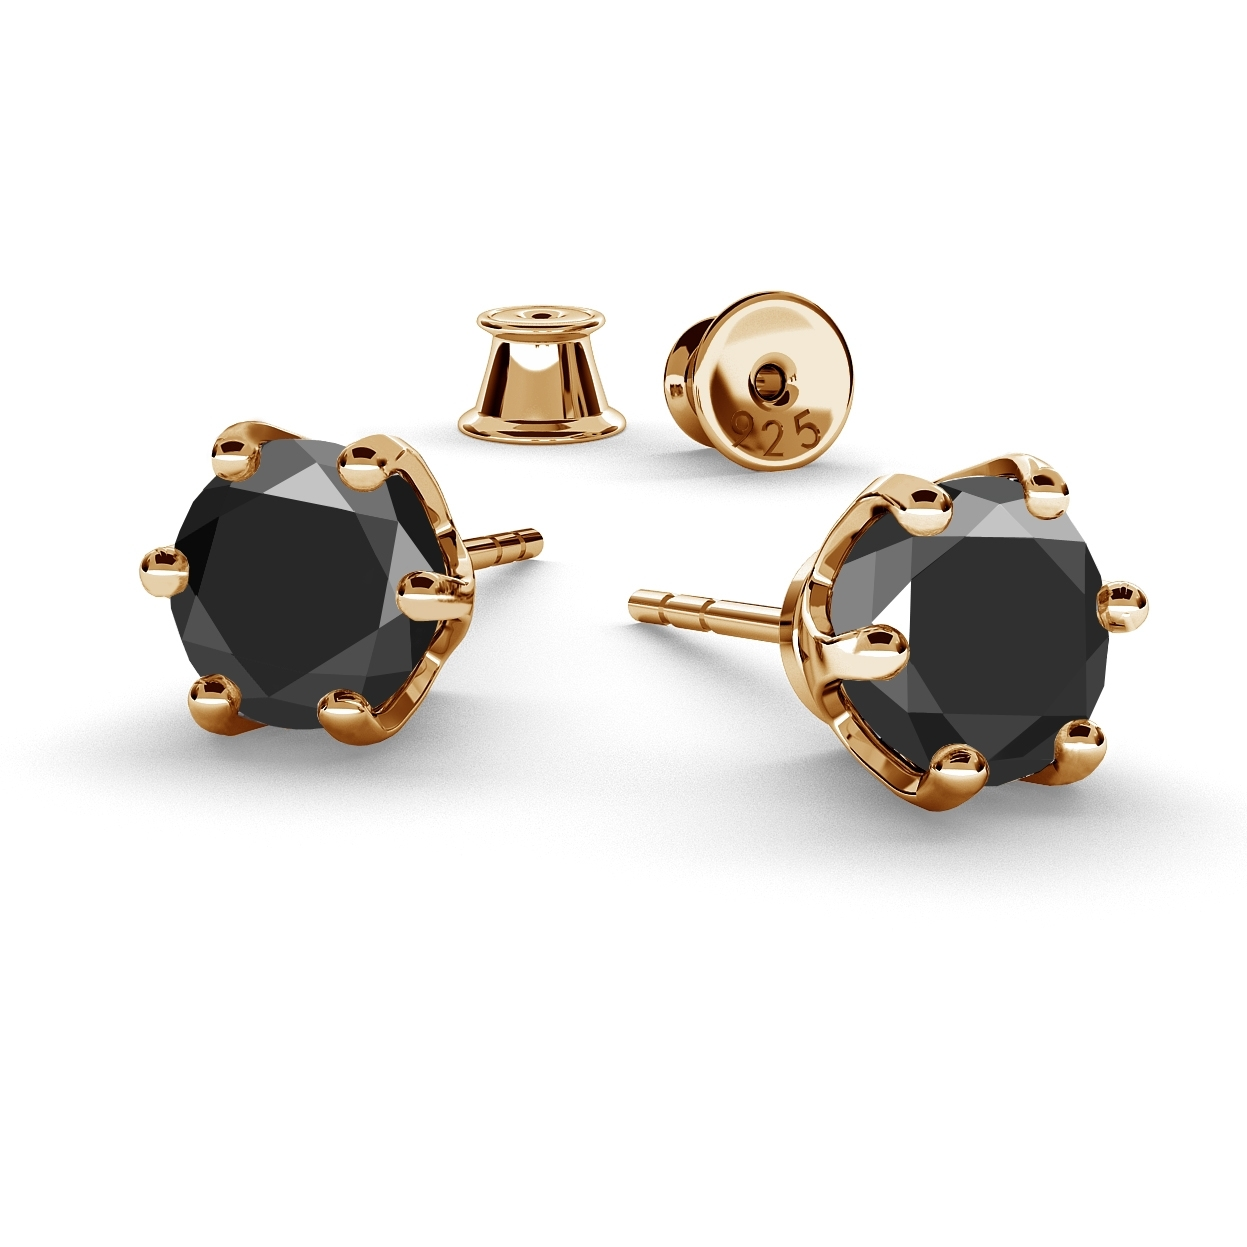 6MM BLACK DIAMOND EARRINGS 1.8K, RHODIUM OR GOLD PLATED